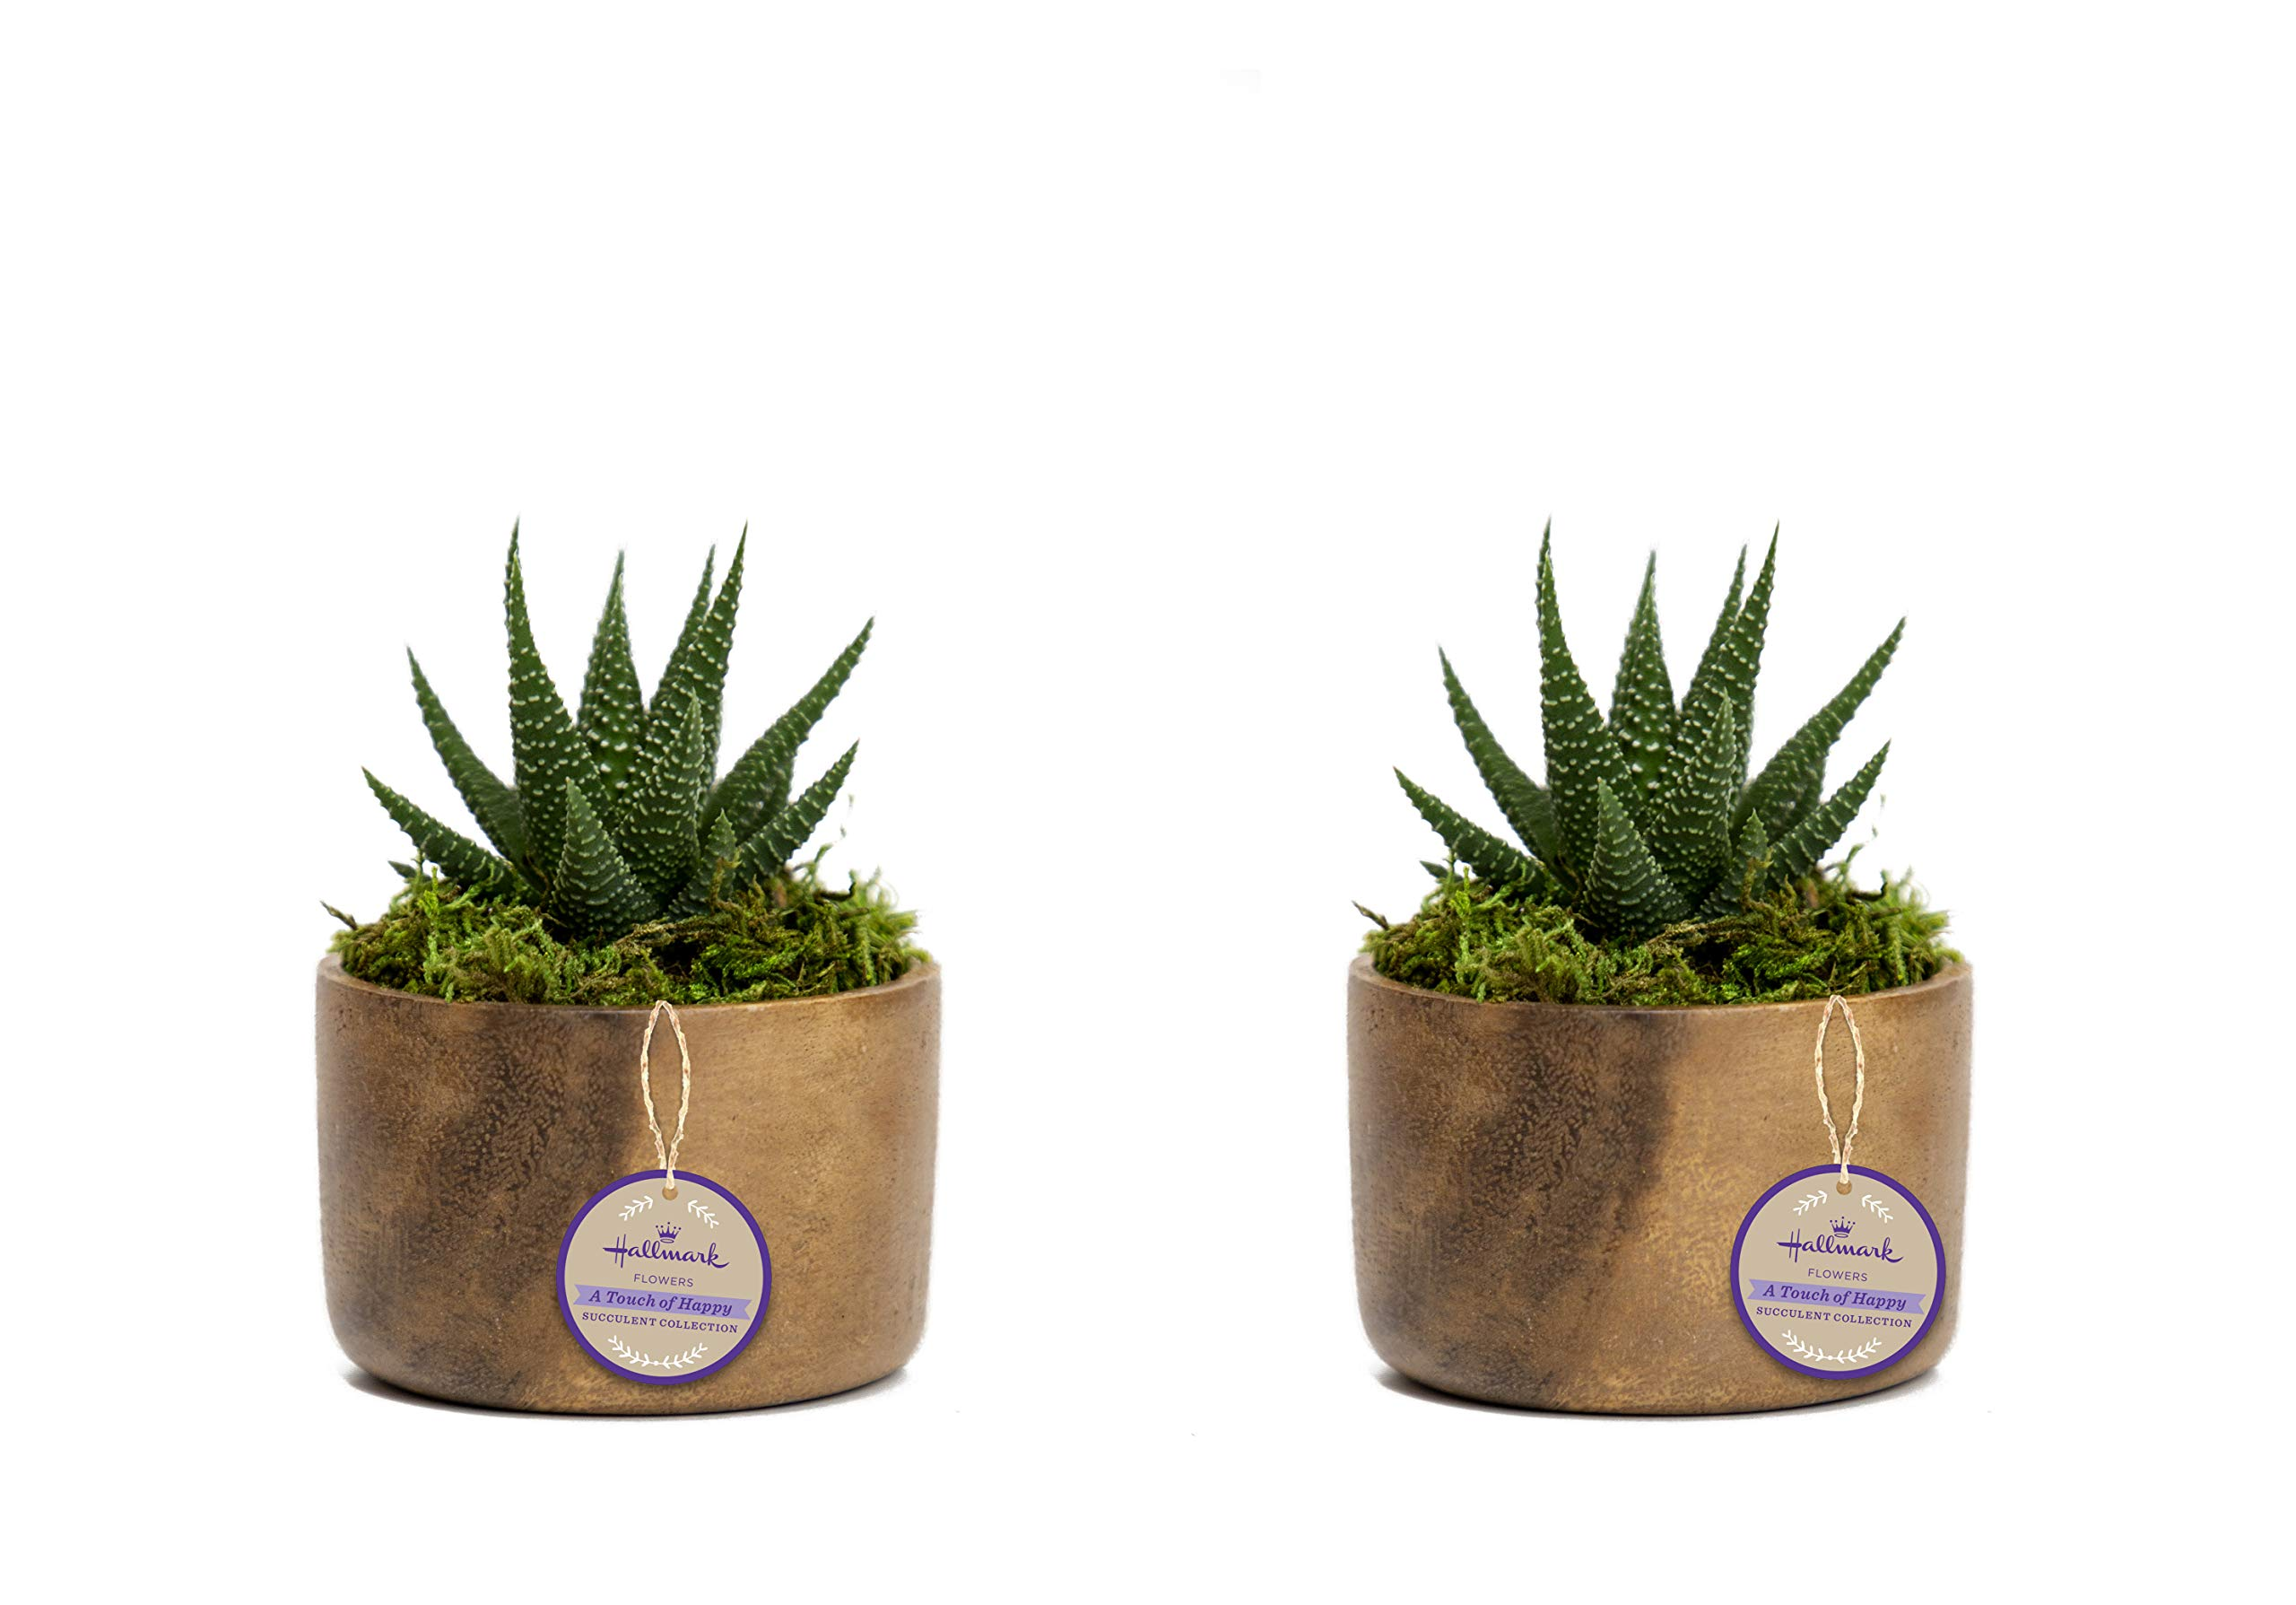 Live Succulents in Wooden Luxe Containers (Set of 2), From Hallmark Flowers by Hallmark Flowers